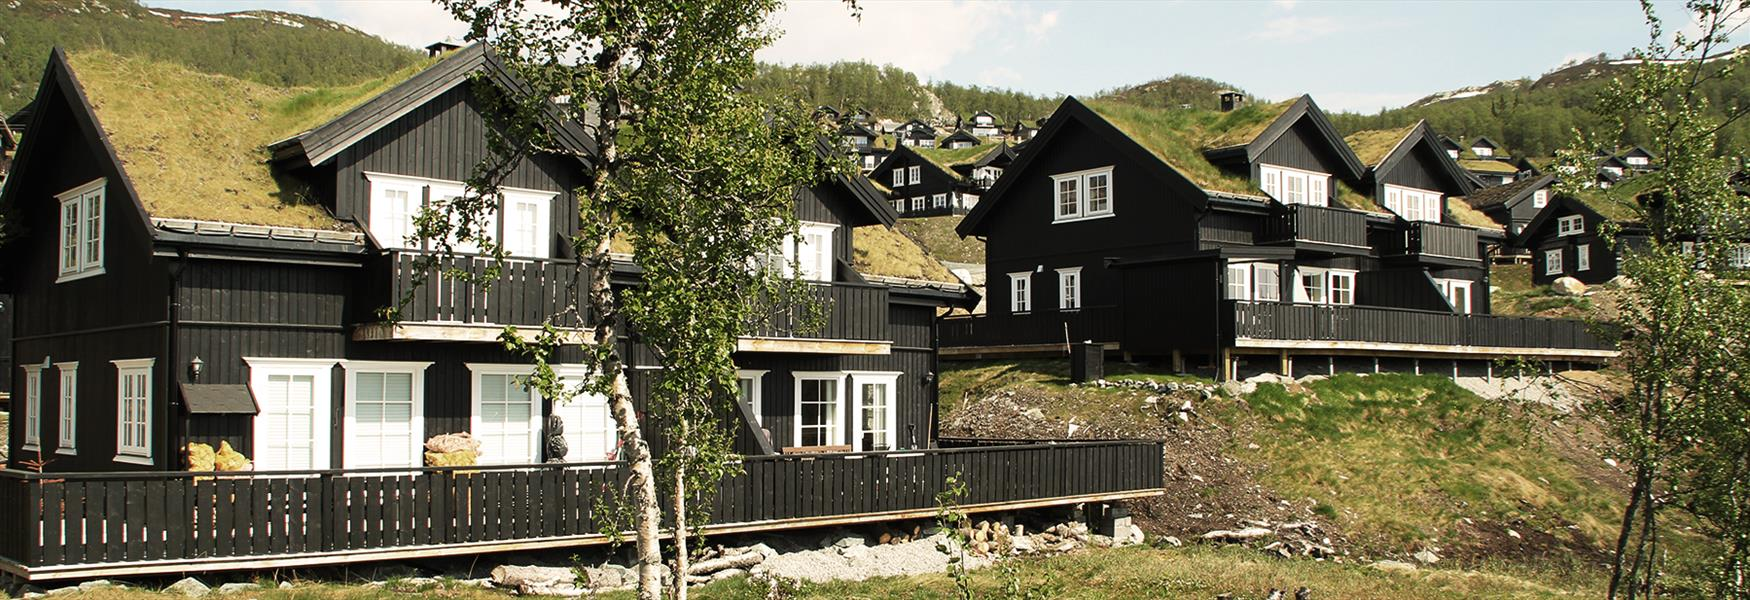 Cottages at Rauland